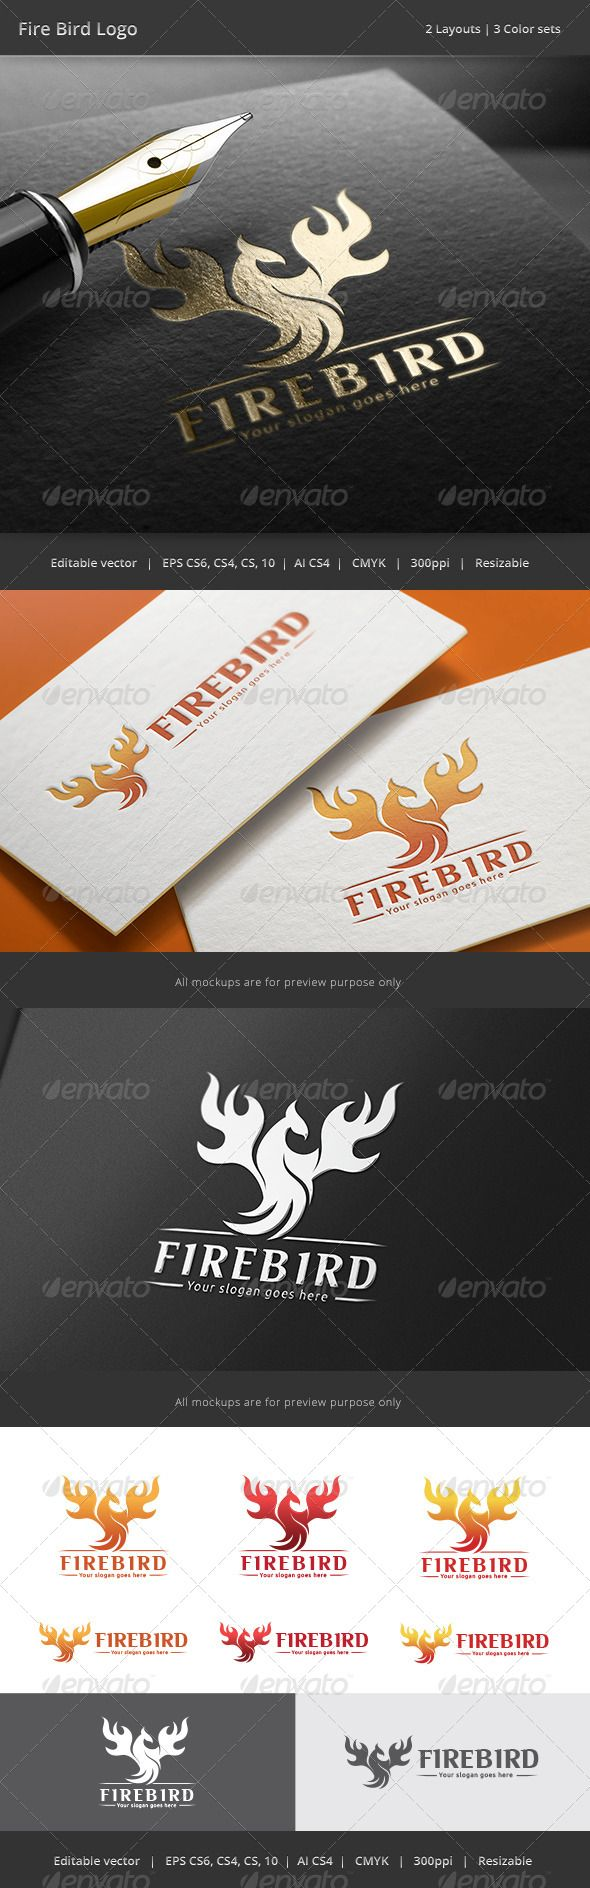 Fire Bird Logo - Animals Logo Templates